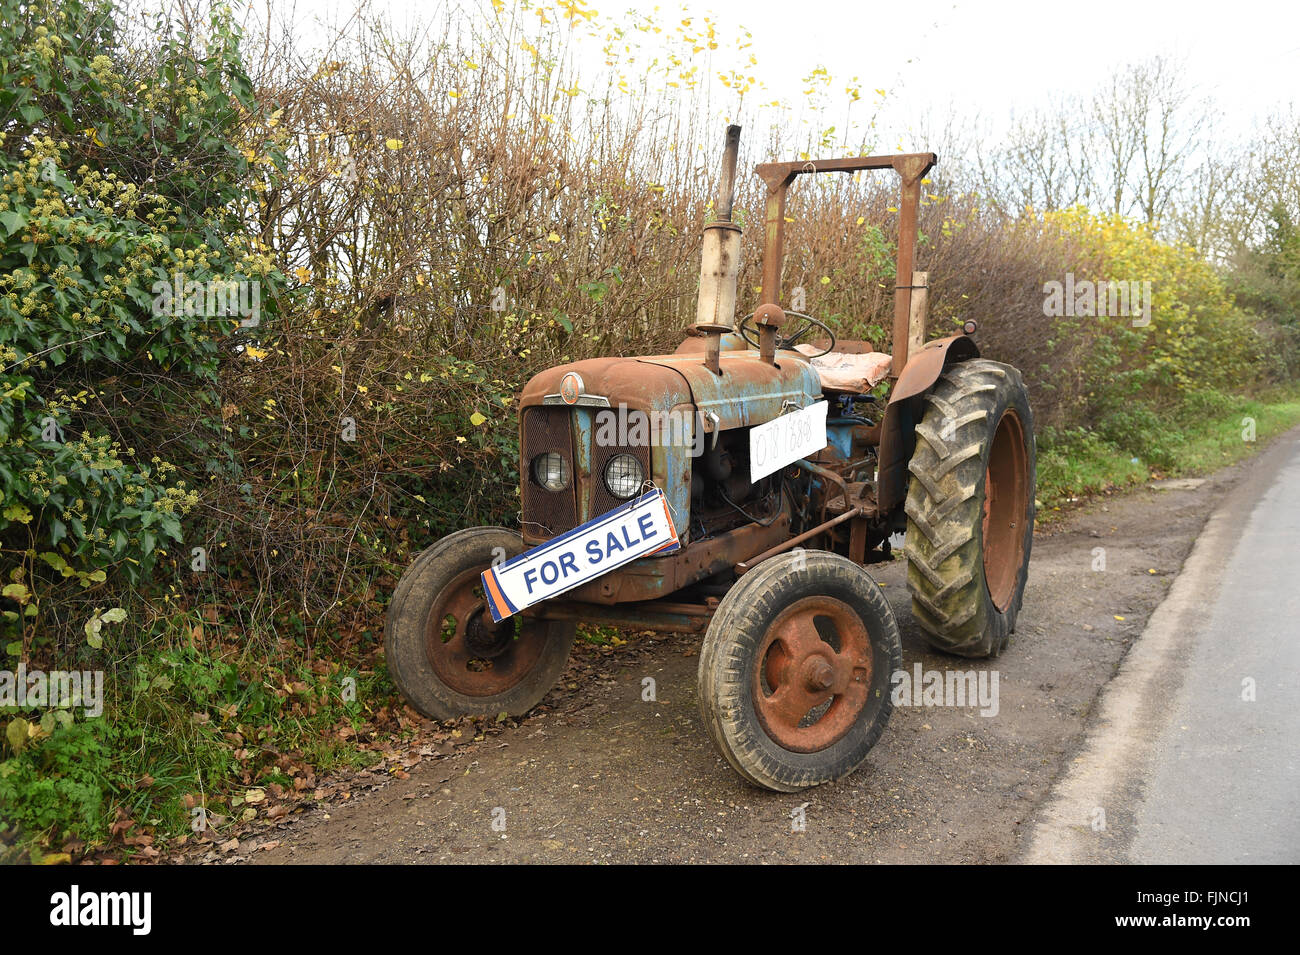 Kubota tractors for sale in kentucky - Tractor For Sale Uk Stock Image